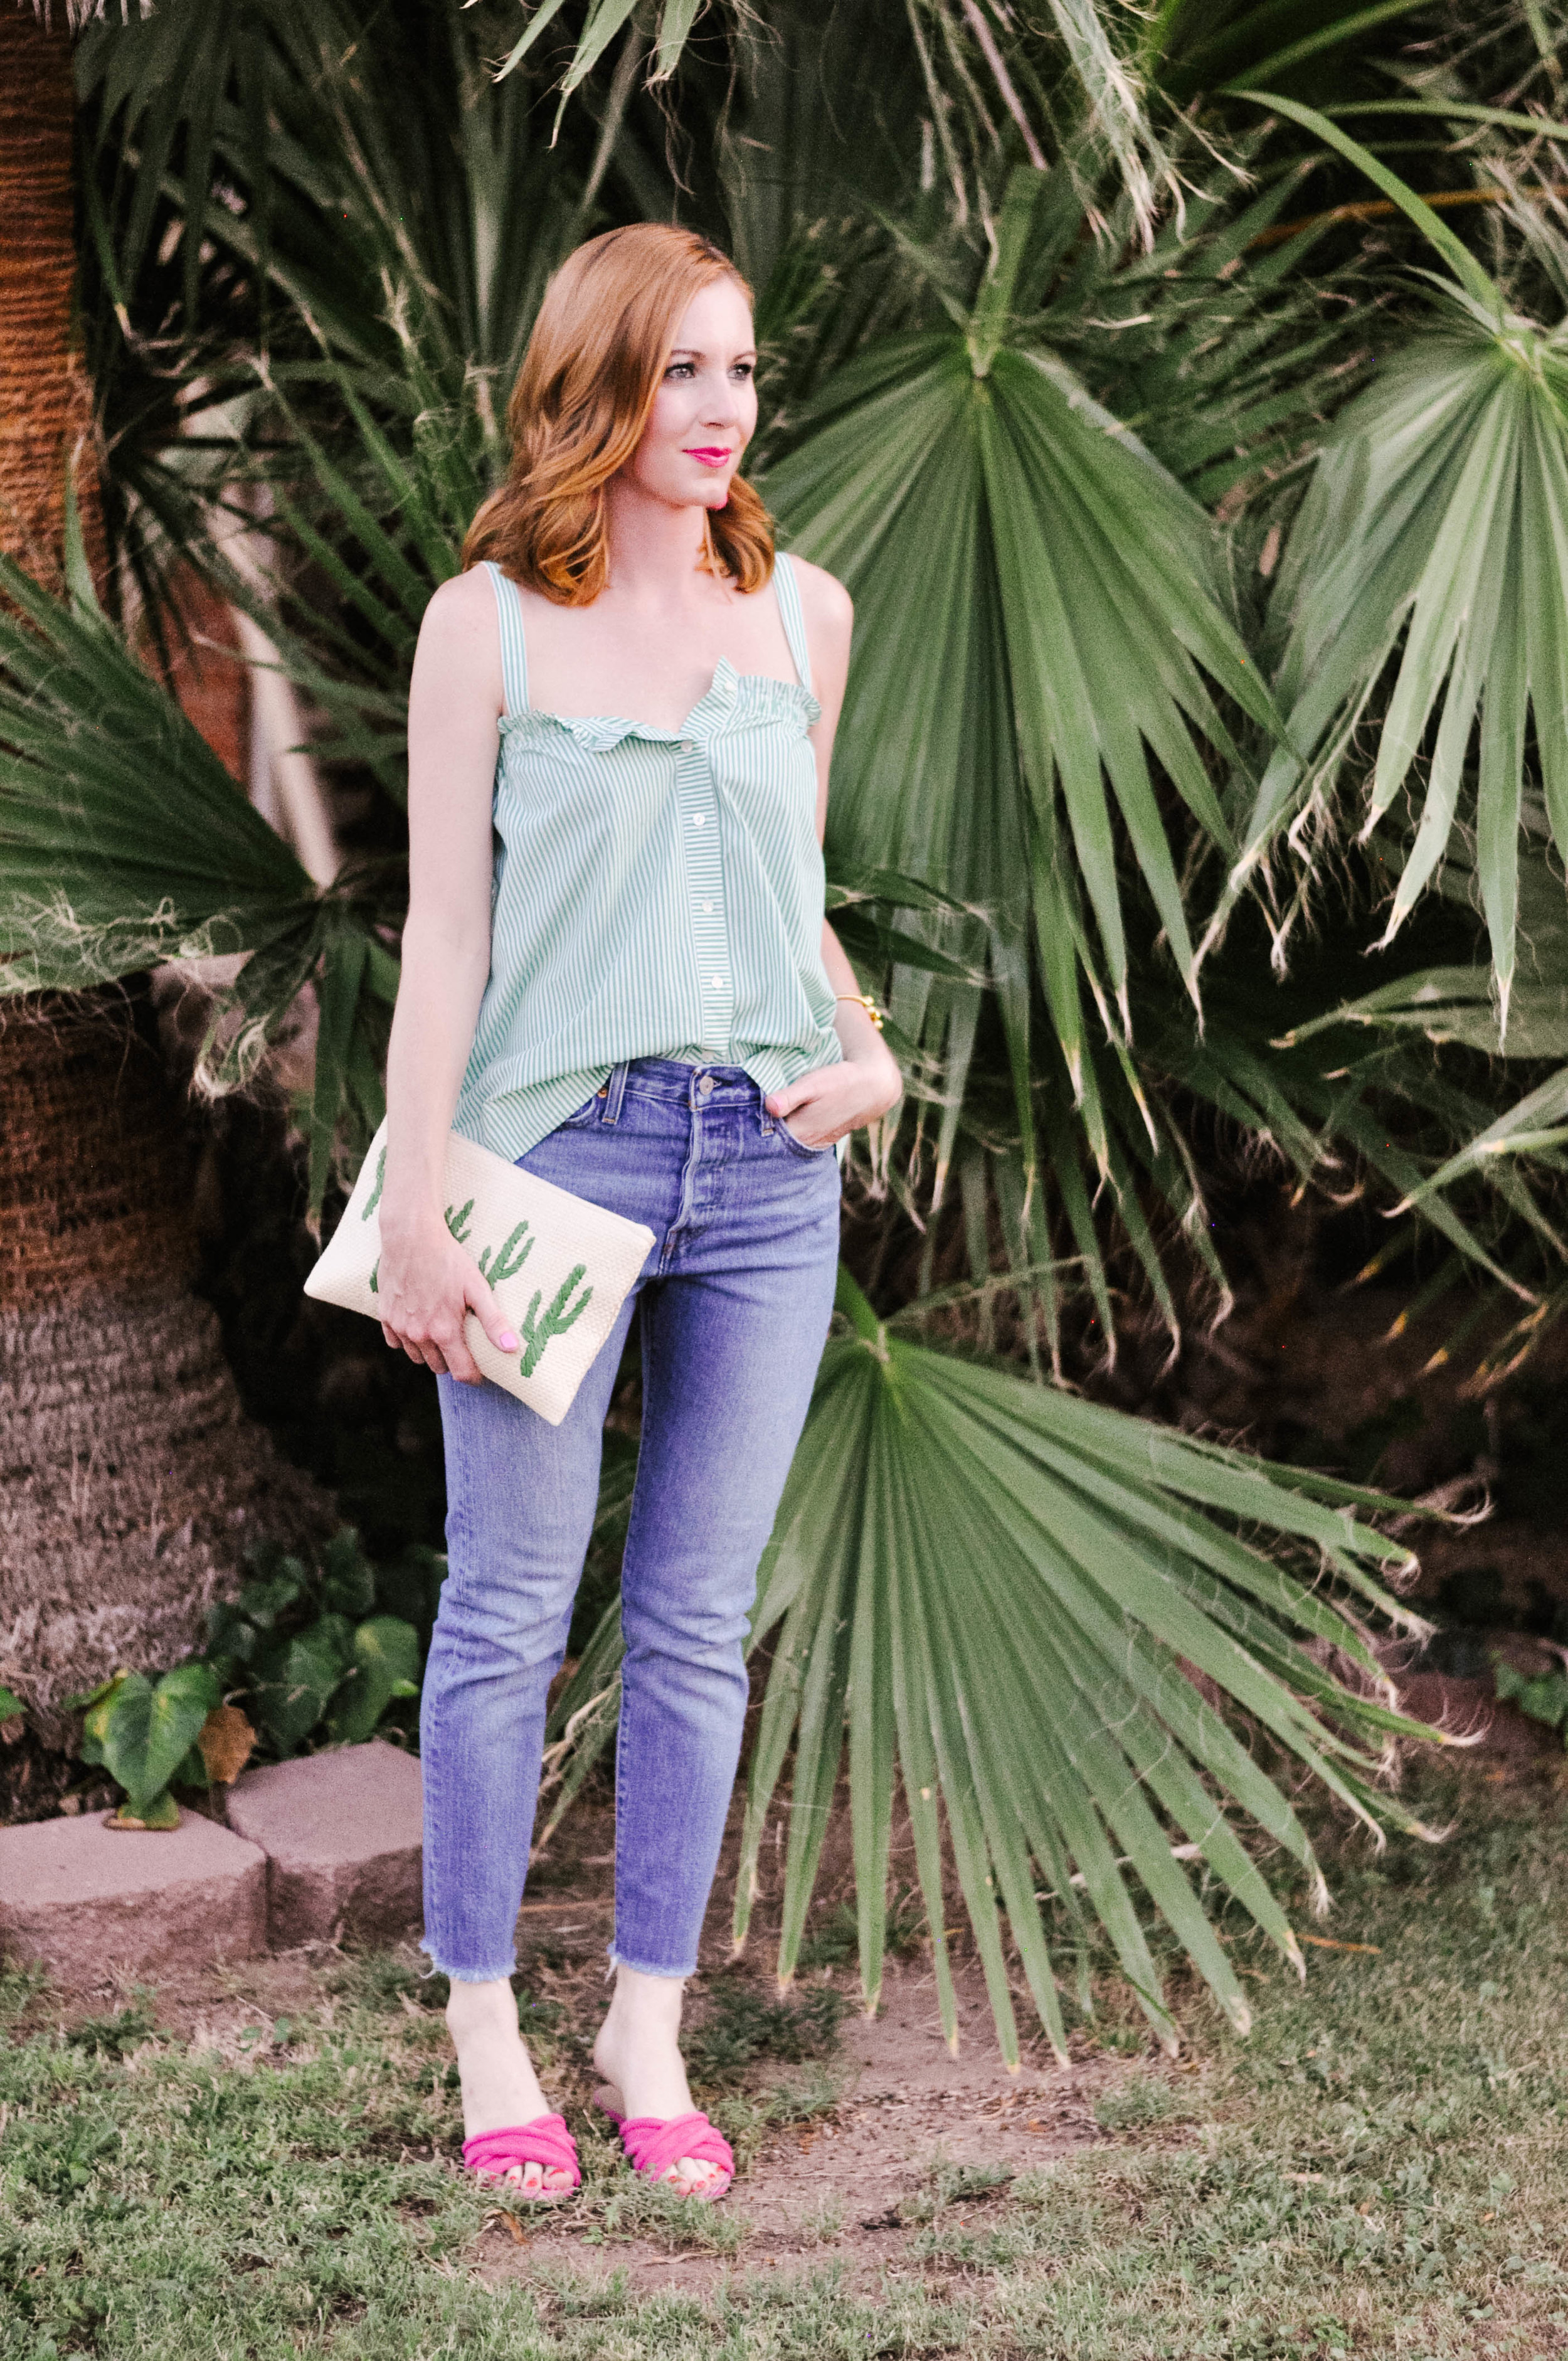 Women's Casual Summer Style